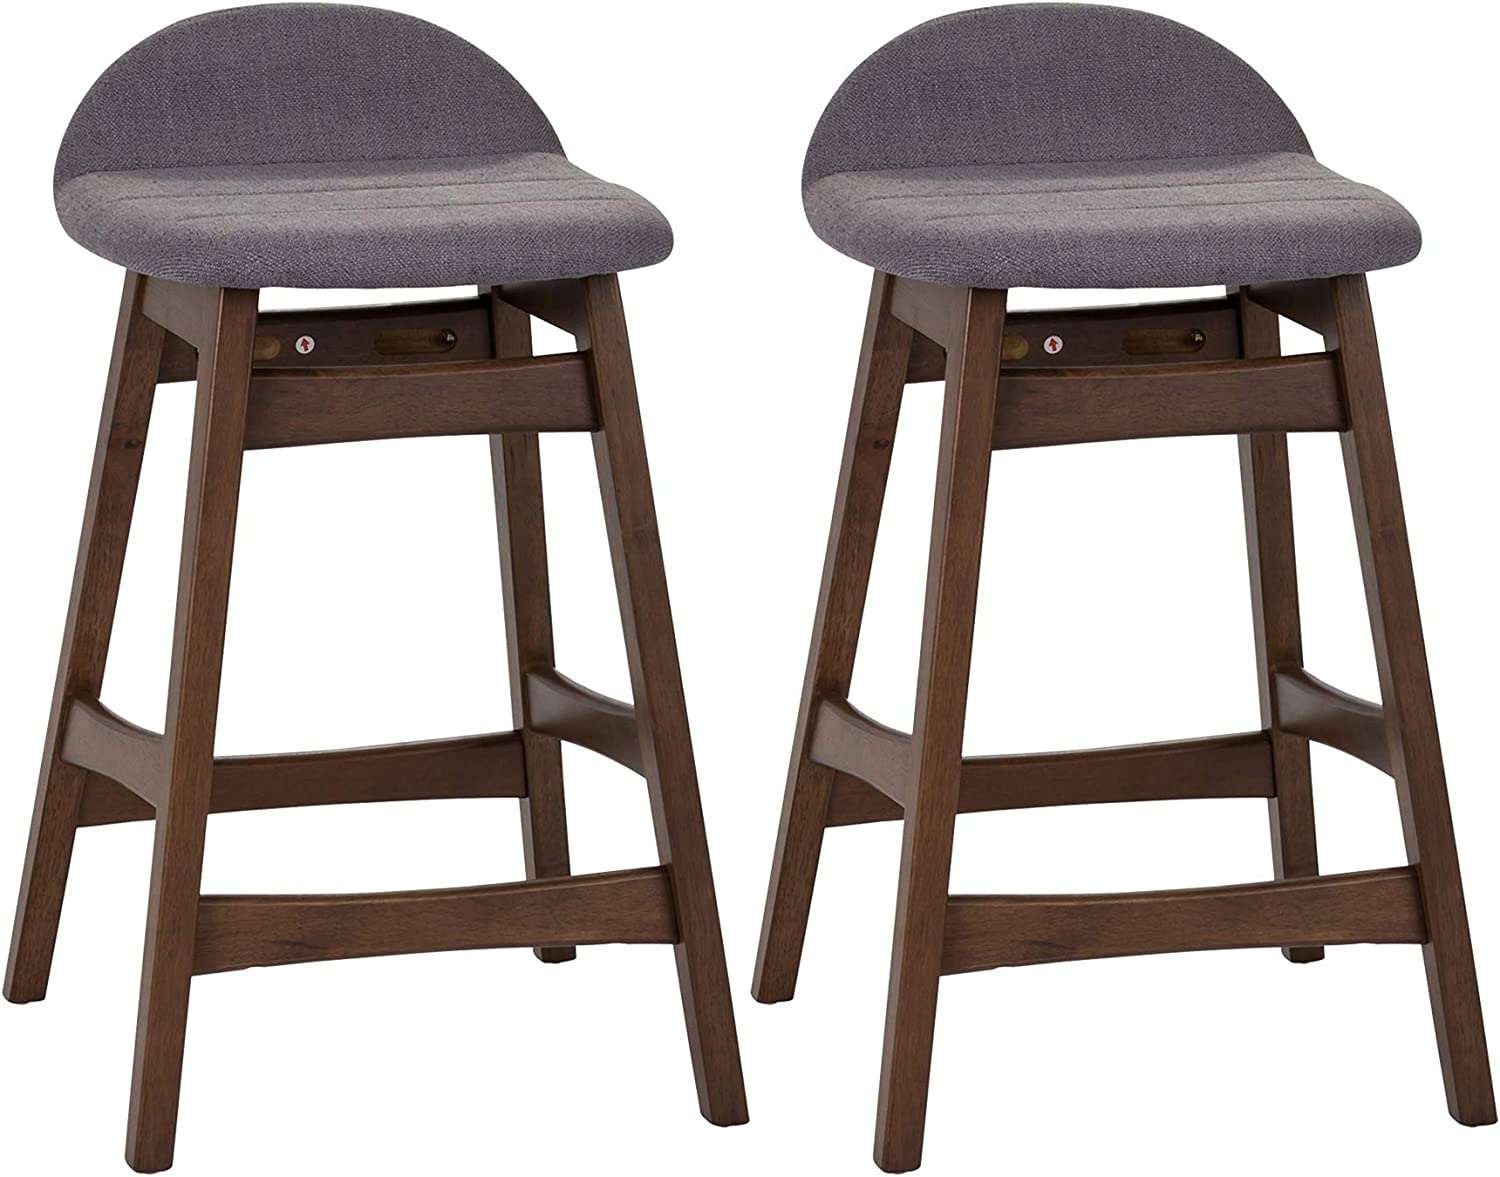 Liberty Furniture Industries Space Savers (Set of 2) Counter Chairs (RTA), Grey